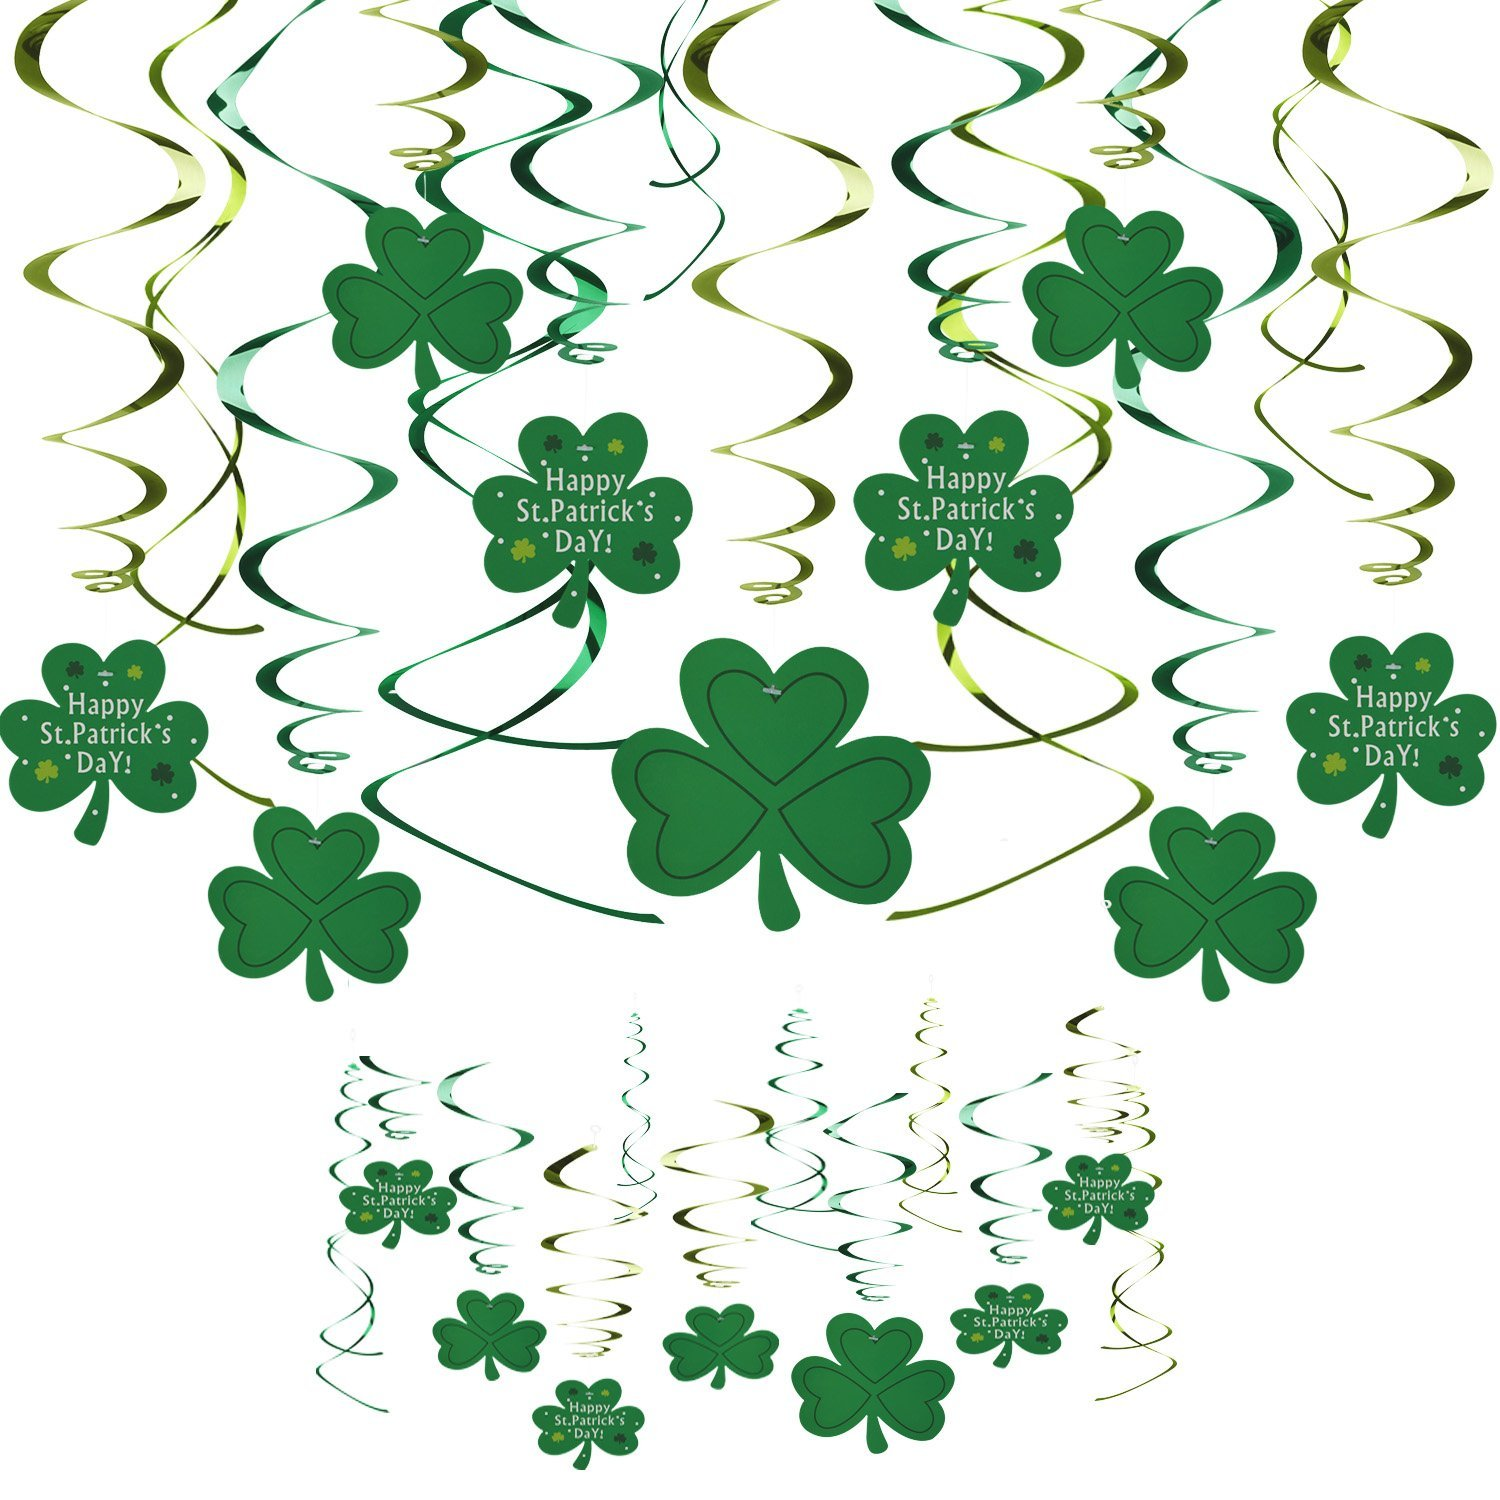 VIPITH Lucky Irish Green St. Patrick's Day Shamrock Foil String Hanging Swirl Decoration for Home Office and Party, Set of 30 Pieces